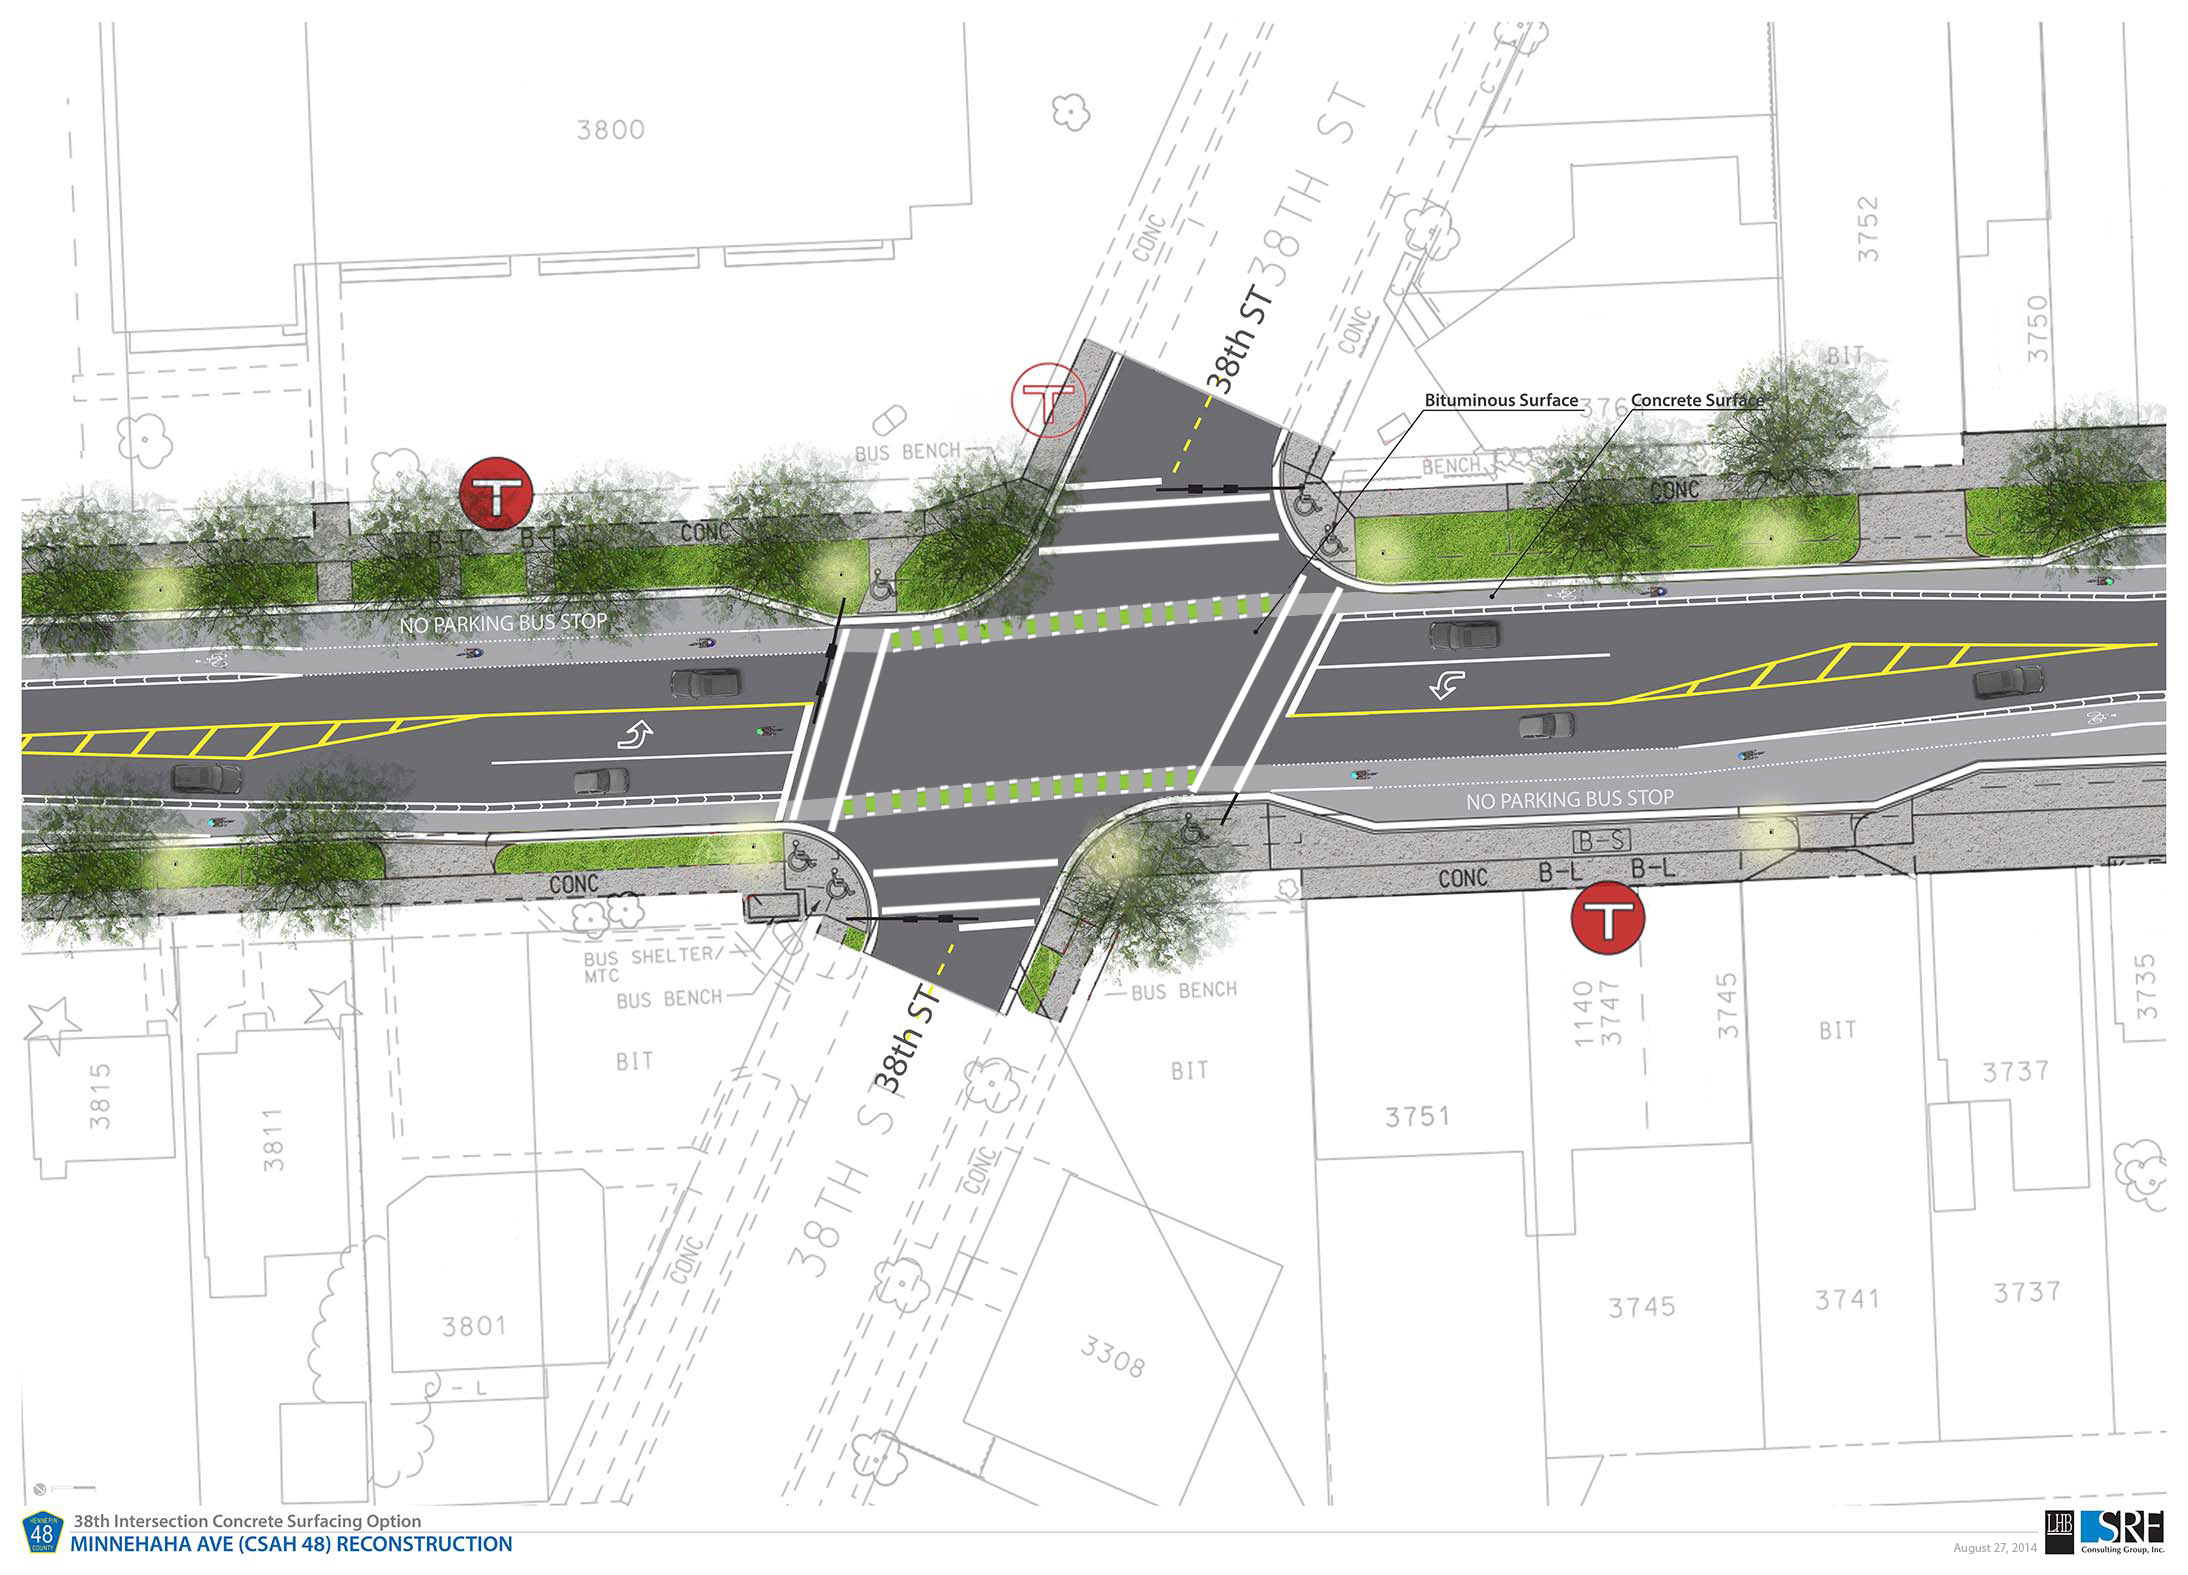 Minnehaha/38th Street Rendering